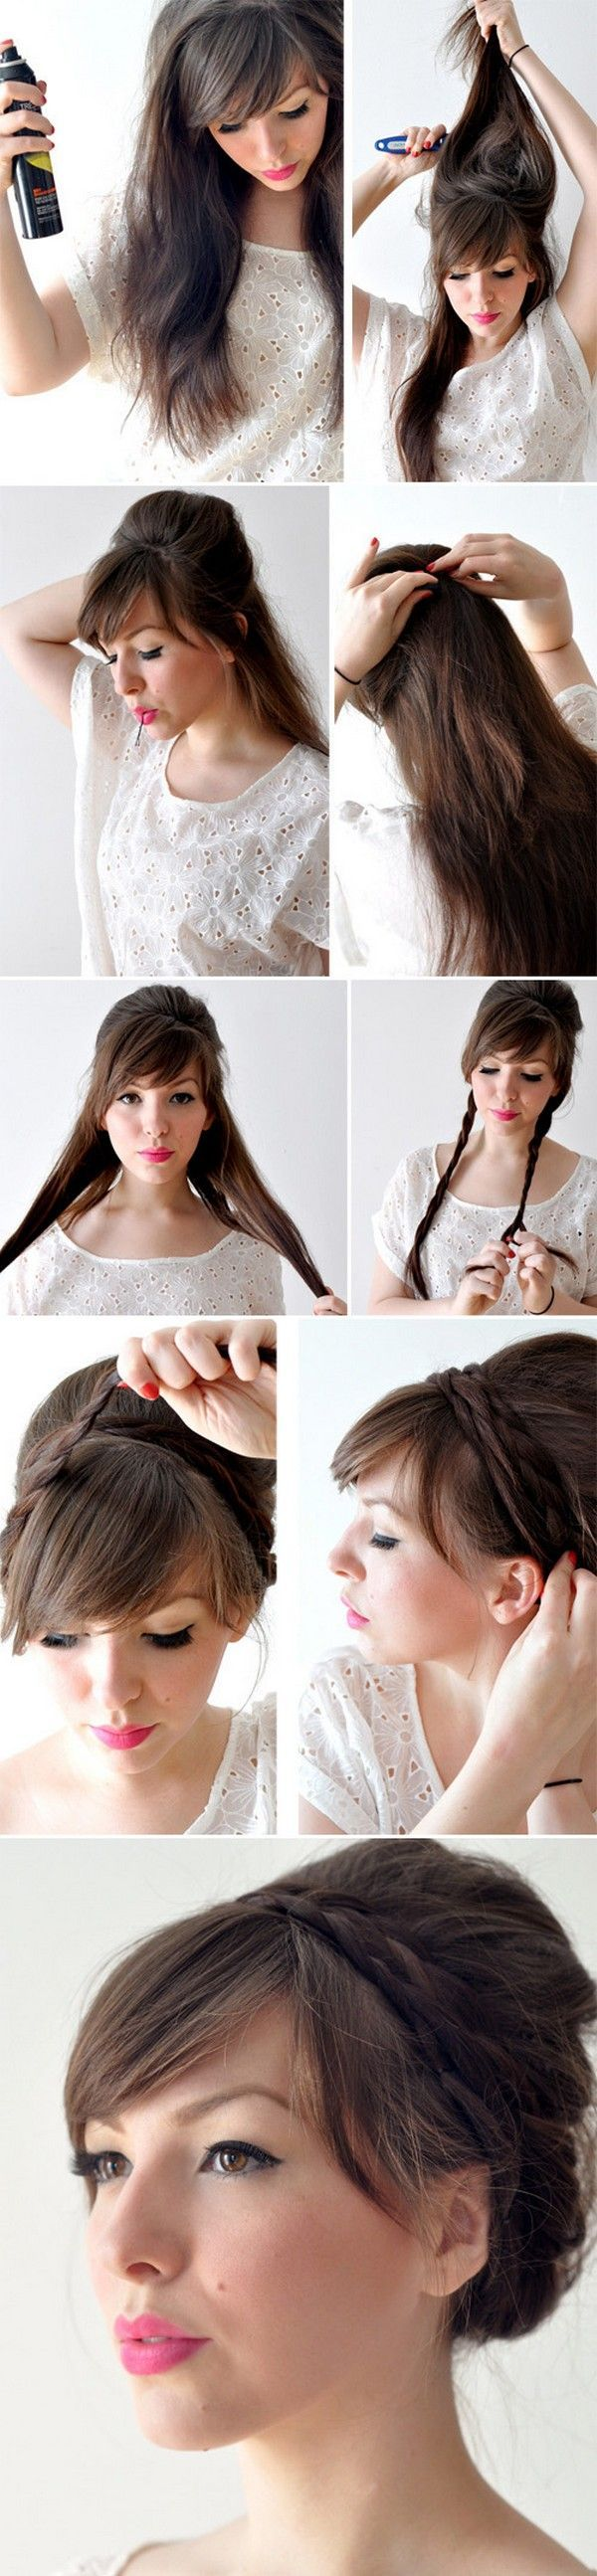 8+GORGEOUS+long+hair+tutorials+you+should+steal+from+Pinterest  - Cosmopolitan.co.uk